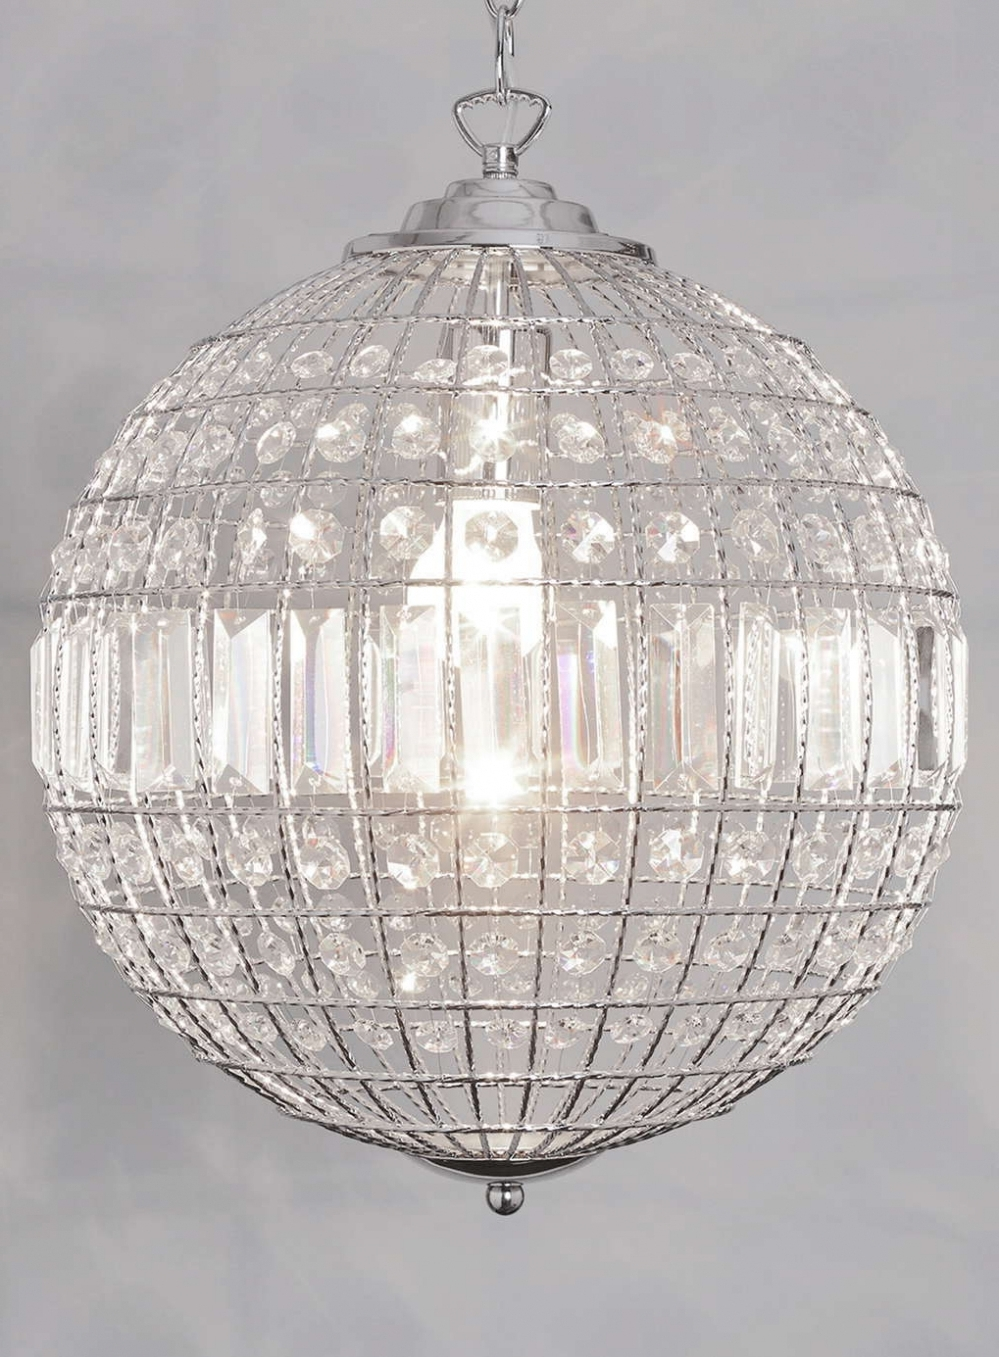 Home Decor: Chandeliers Design : Wonderful Crystal Globe Chandelier In Current Crystal Globe Chandelier (View 7 of 15)